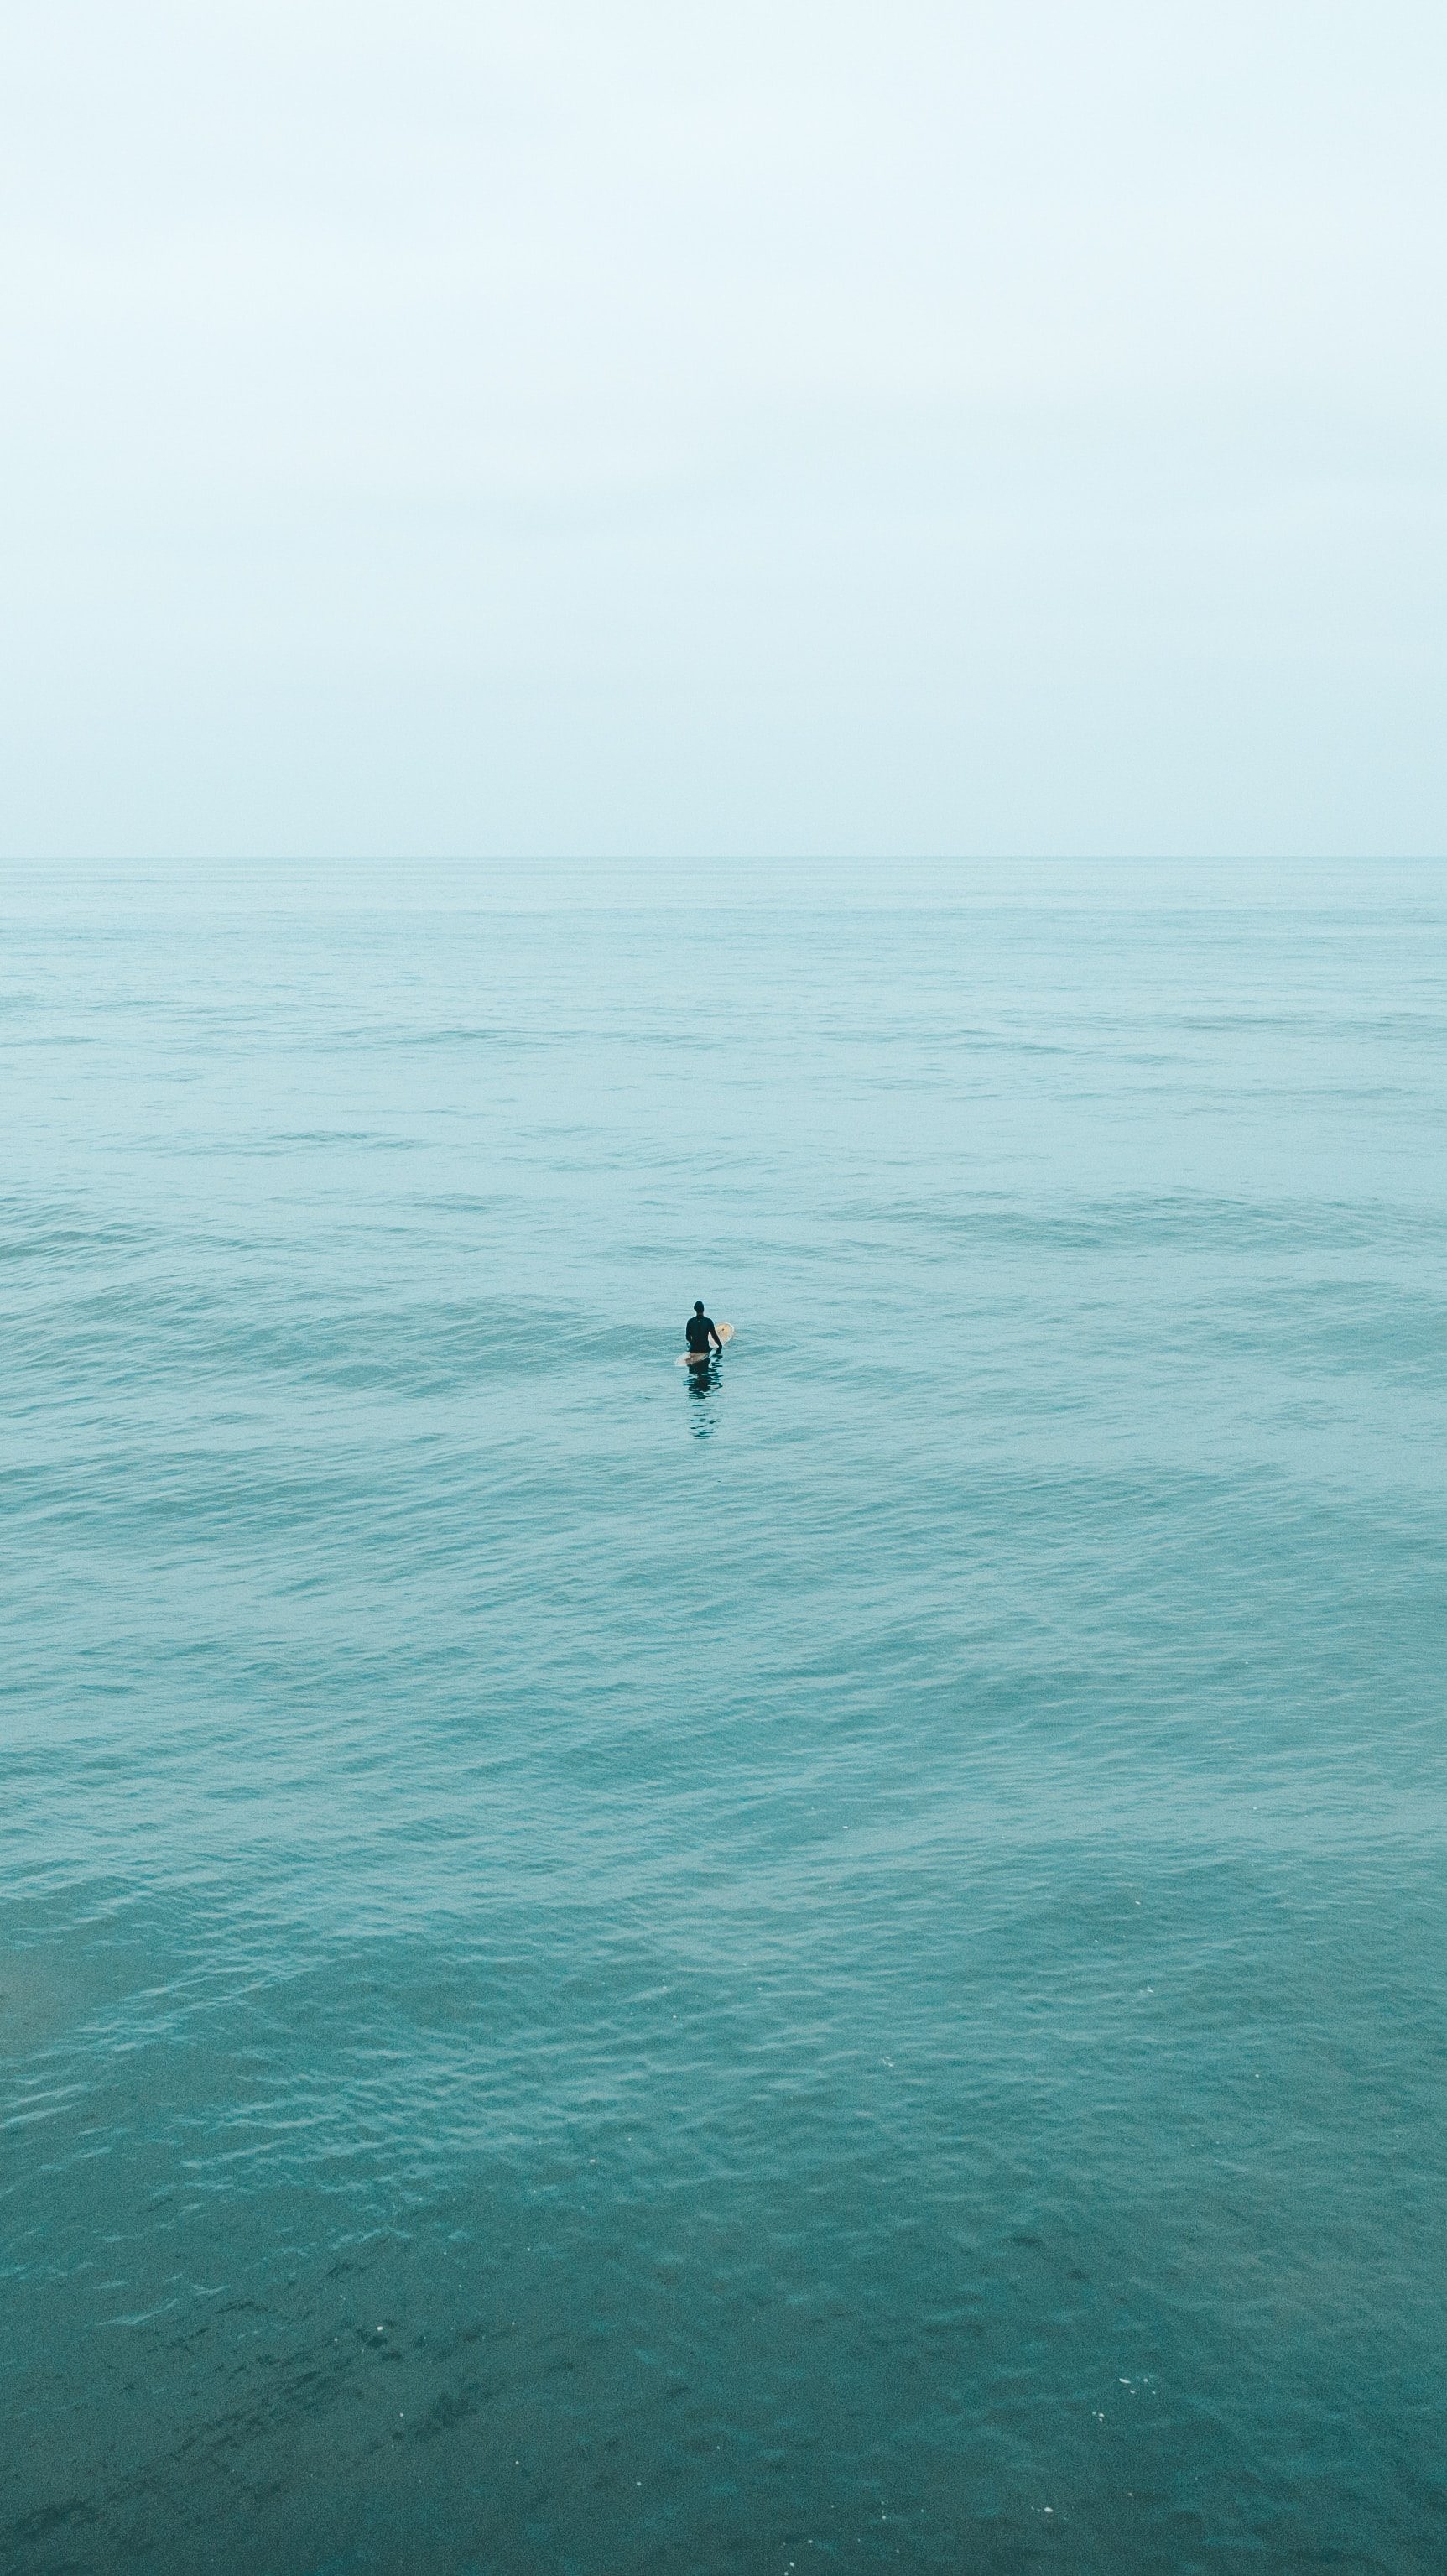 138684 download wallpaper Minimalism, Surfer, Serfing, Ocean, Water, Waves screensavers and pictures for free